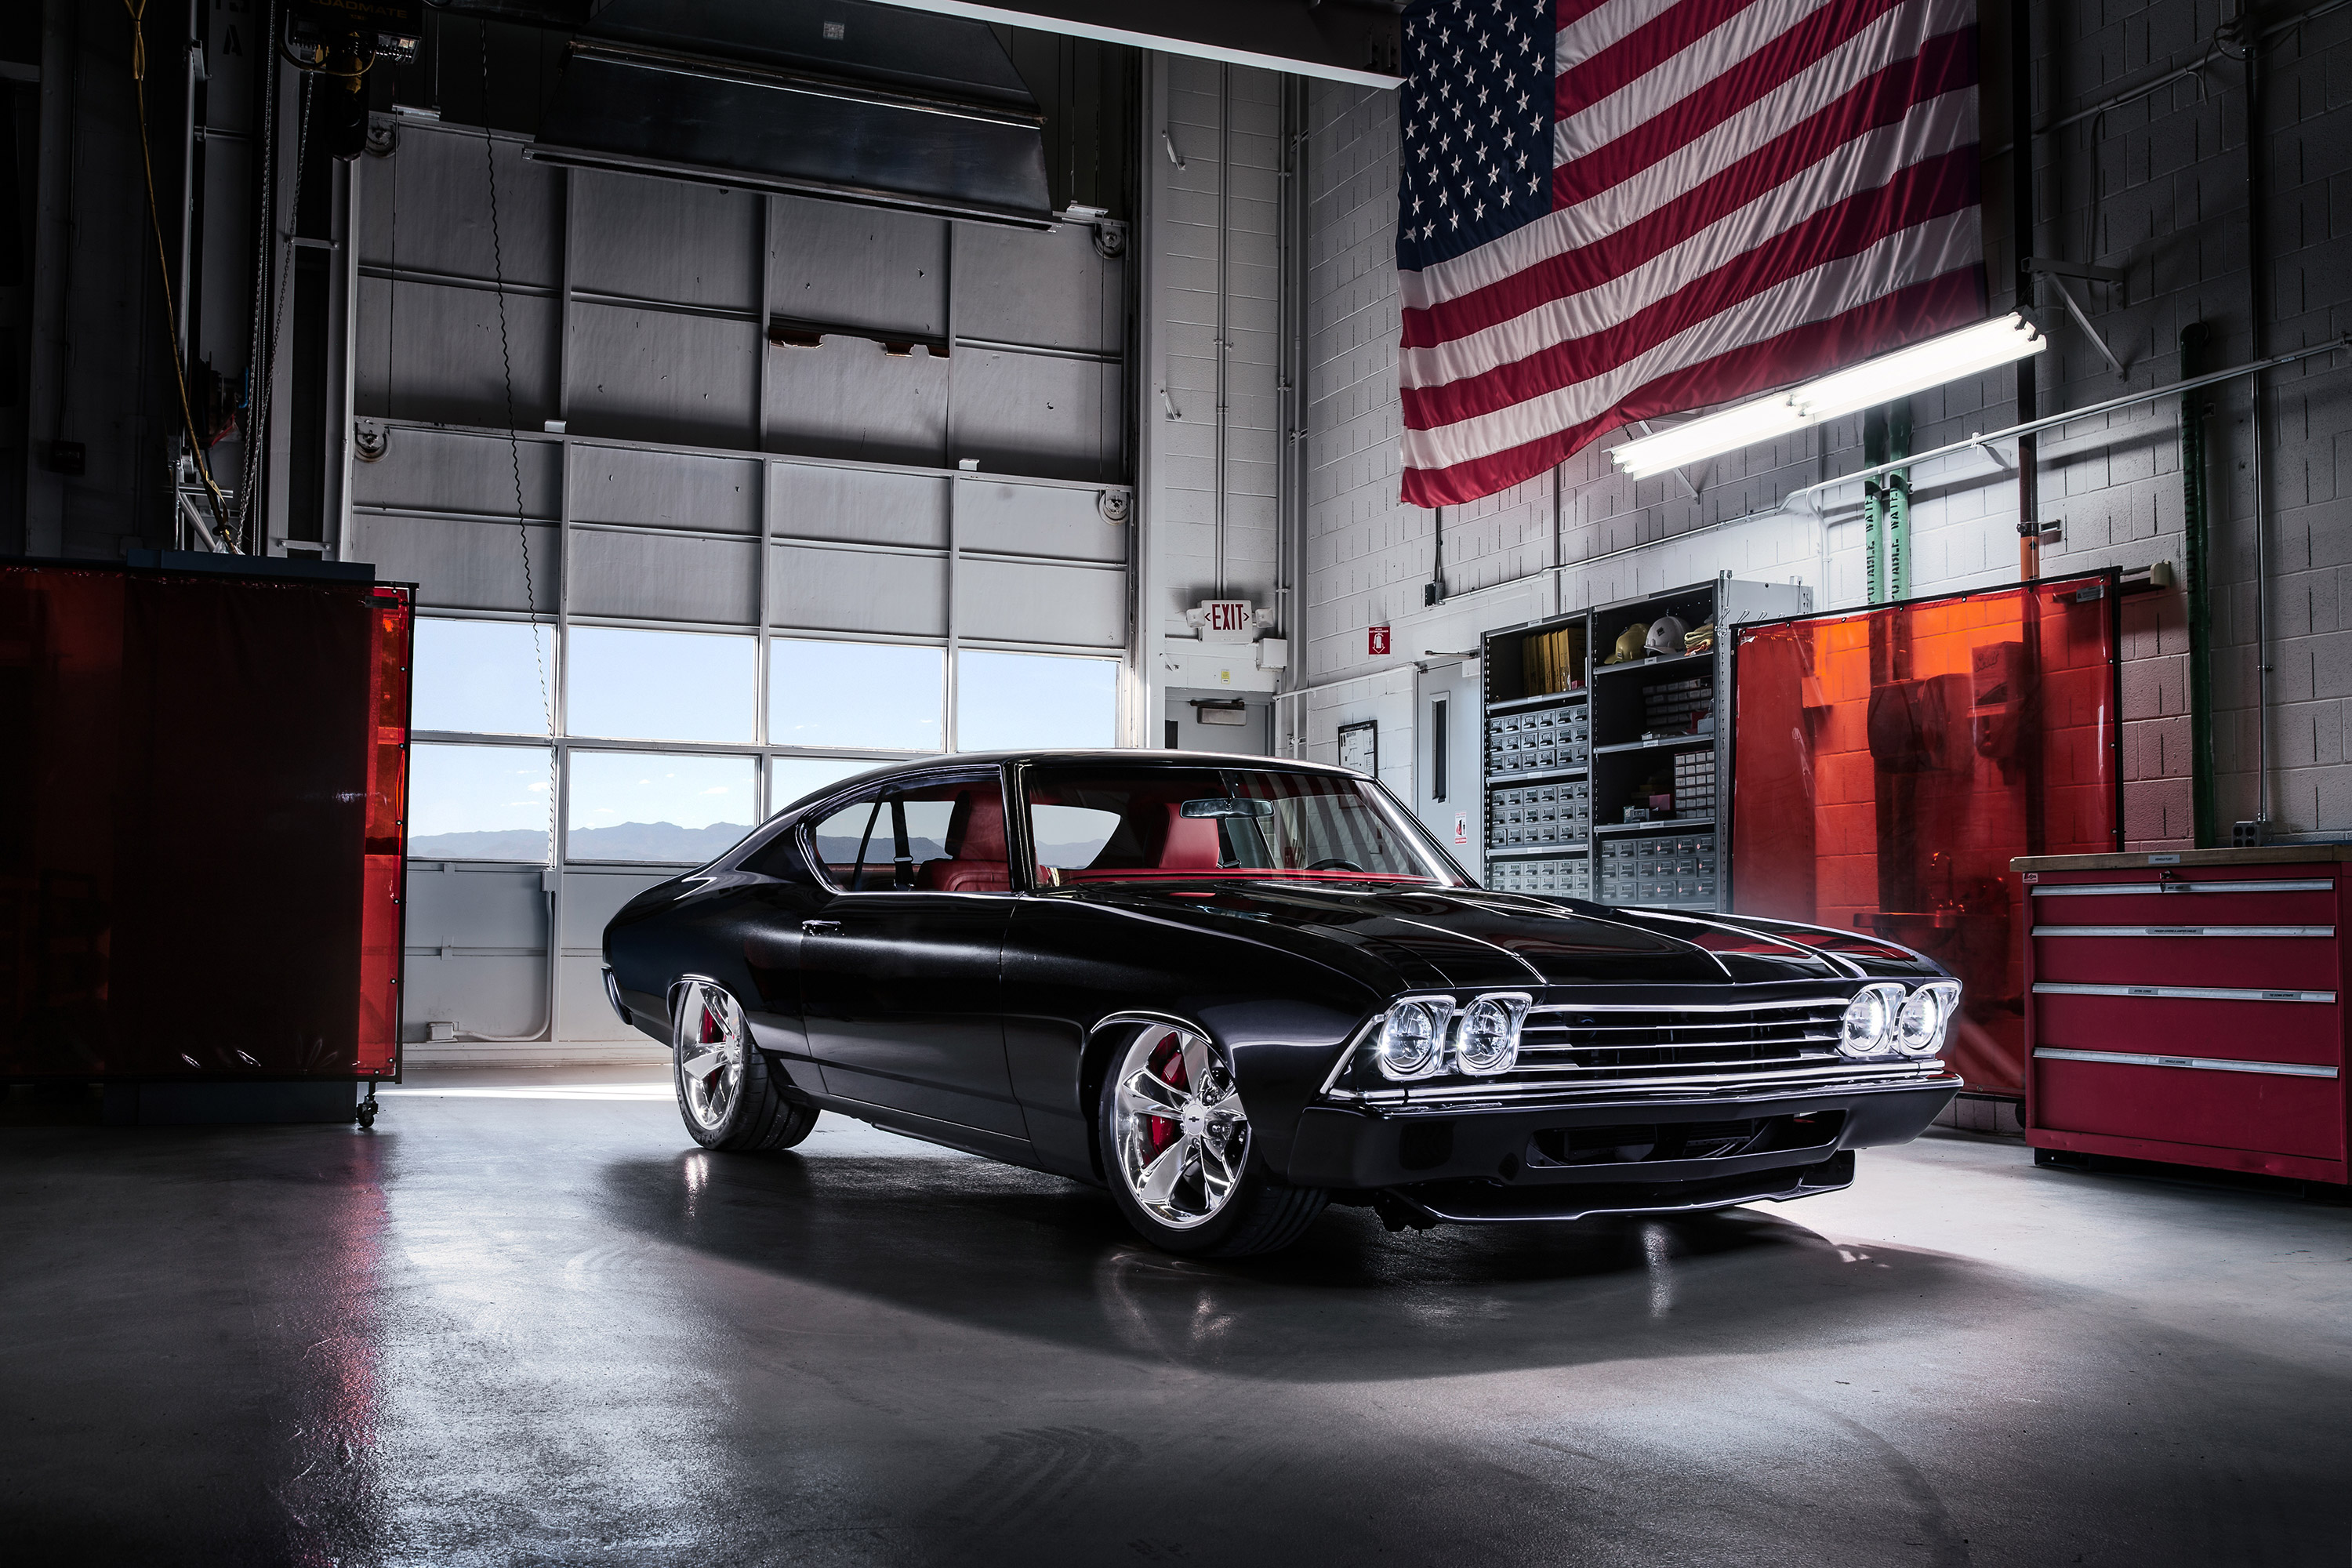 2560x1440 Chevrolet Chevelle Muscle Car 1440p Resolution Hd 4k Wallpapers Images Backgrounds Photos And Pictures